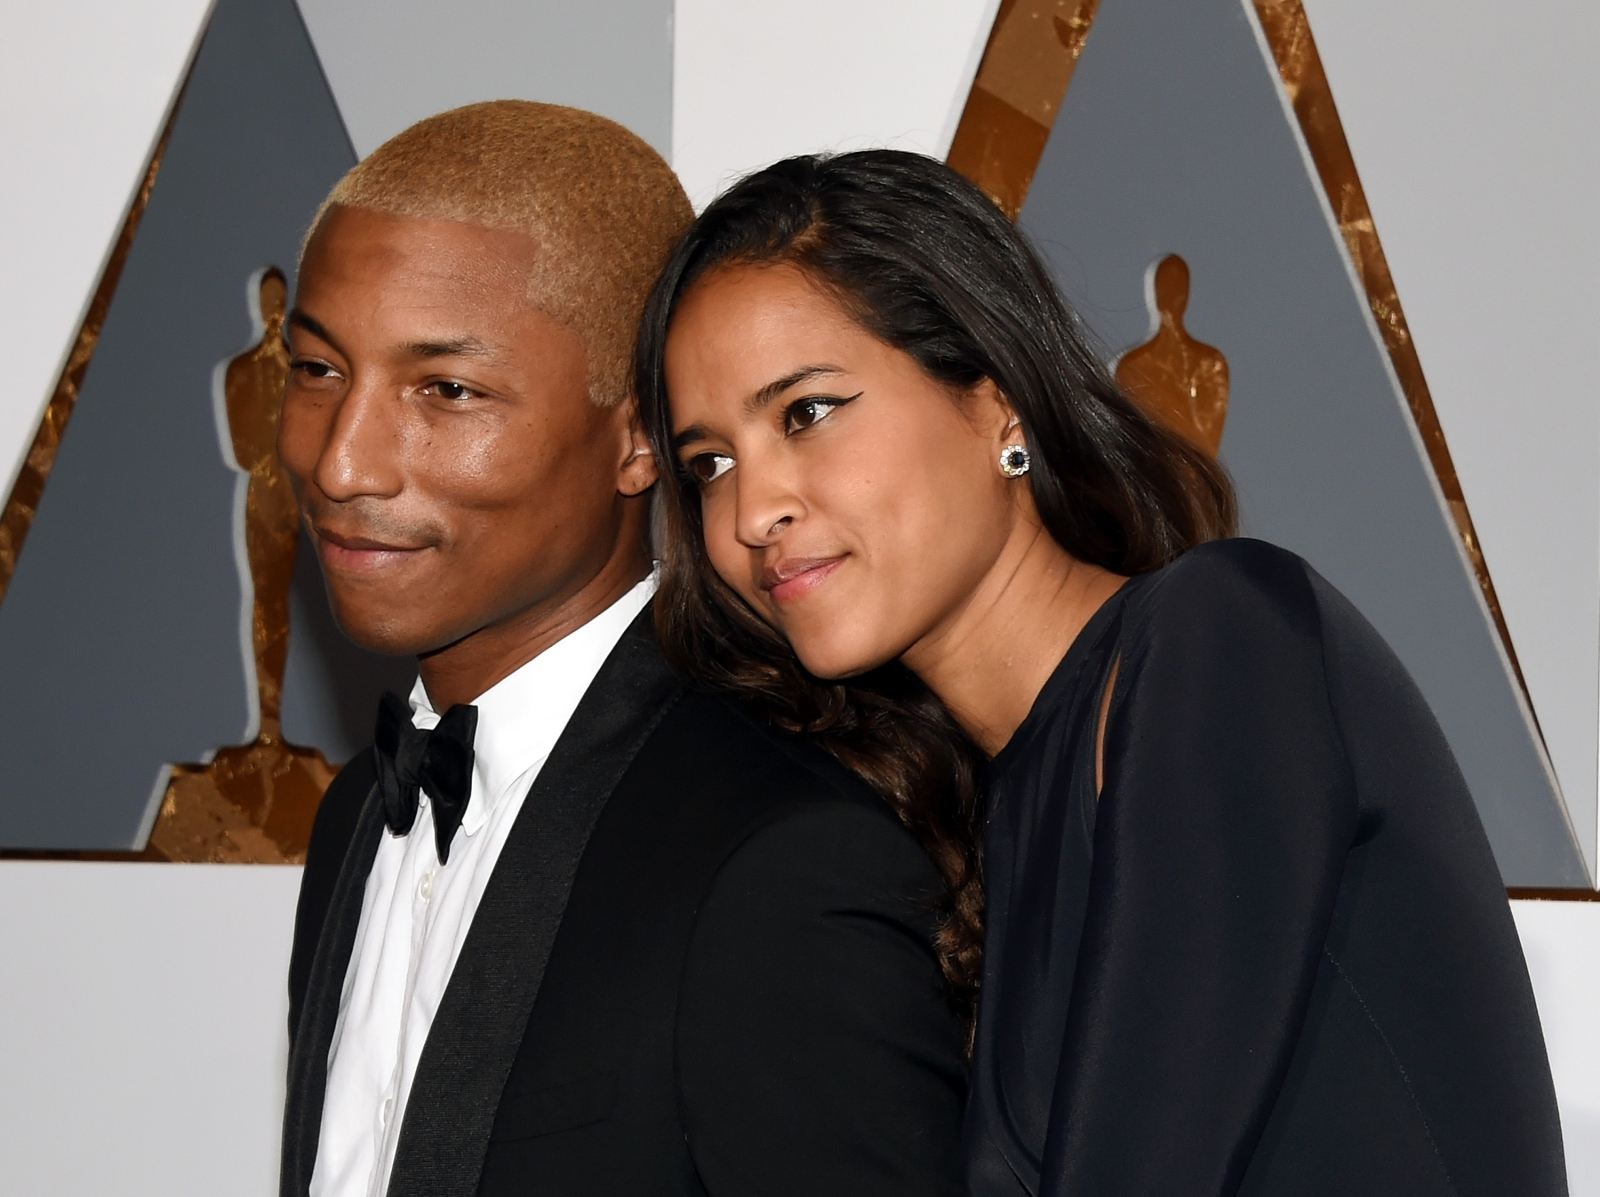 Pharrell Williams and wife